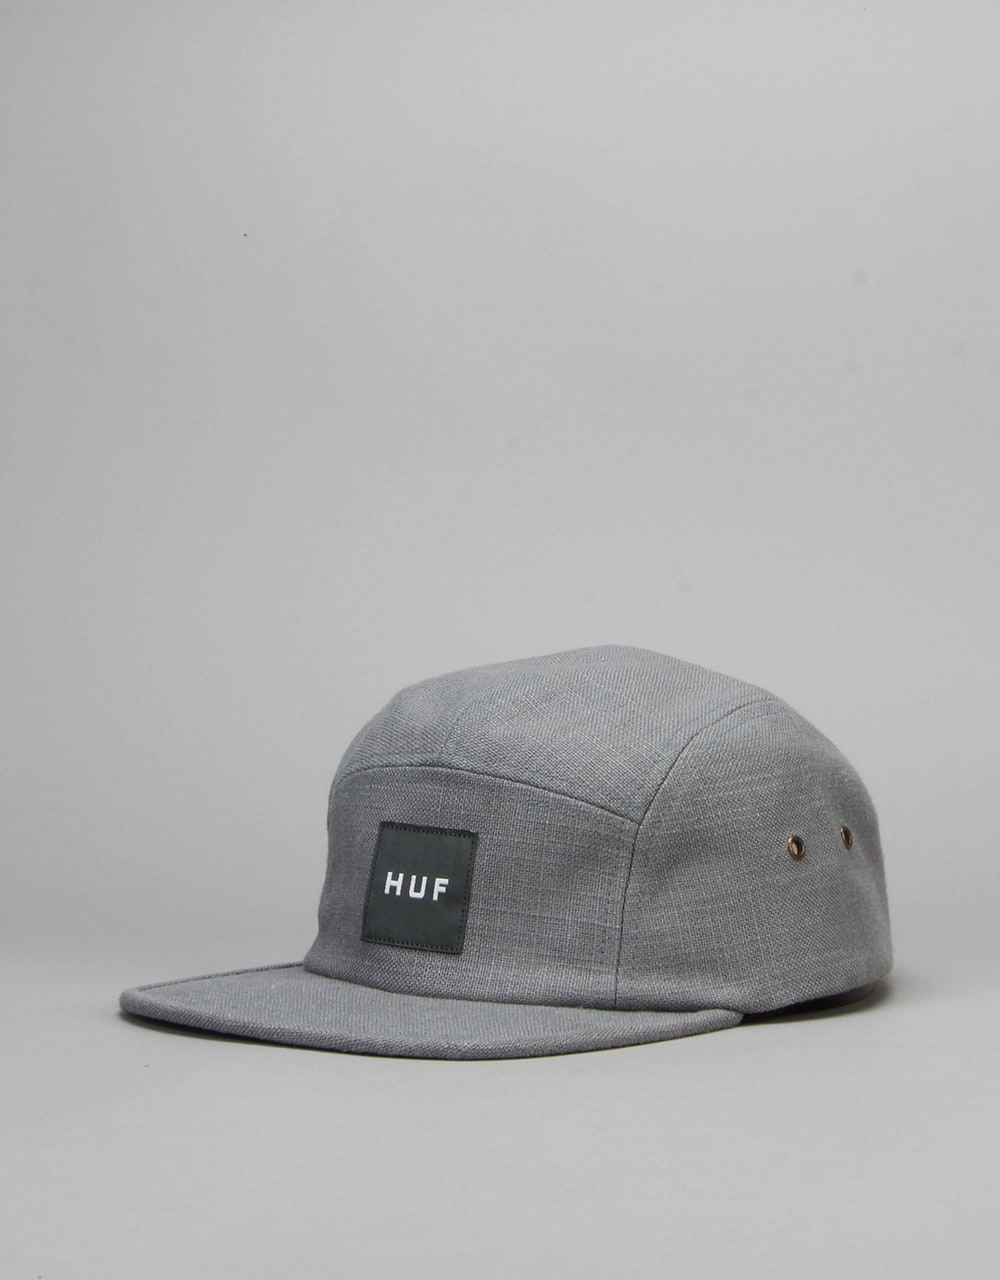 438c91b3 HUF Tonal Linen Volley 5 Panel Cap - Slate | 5 Panel Caps | Caps & Hats|  Skate Accessories | Route One